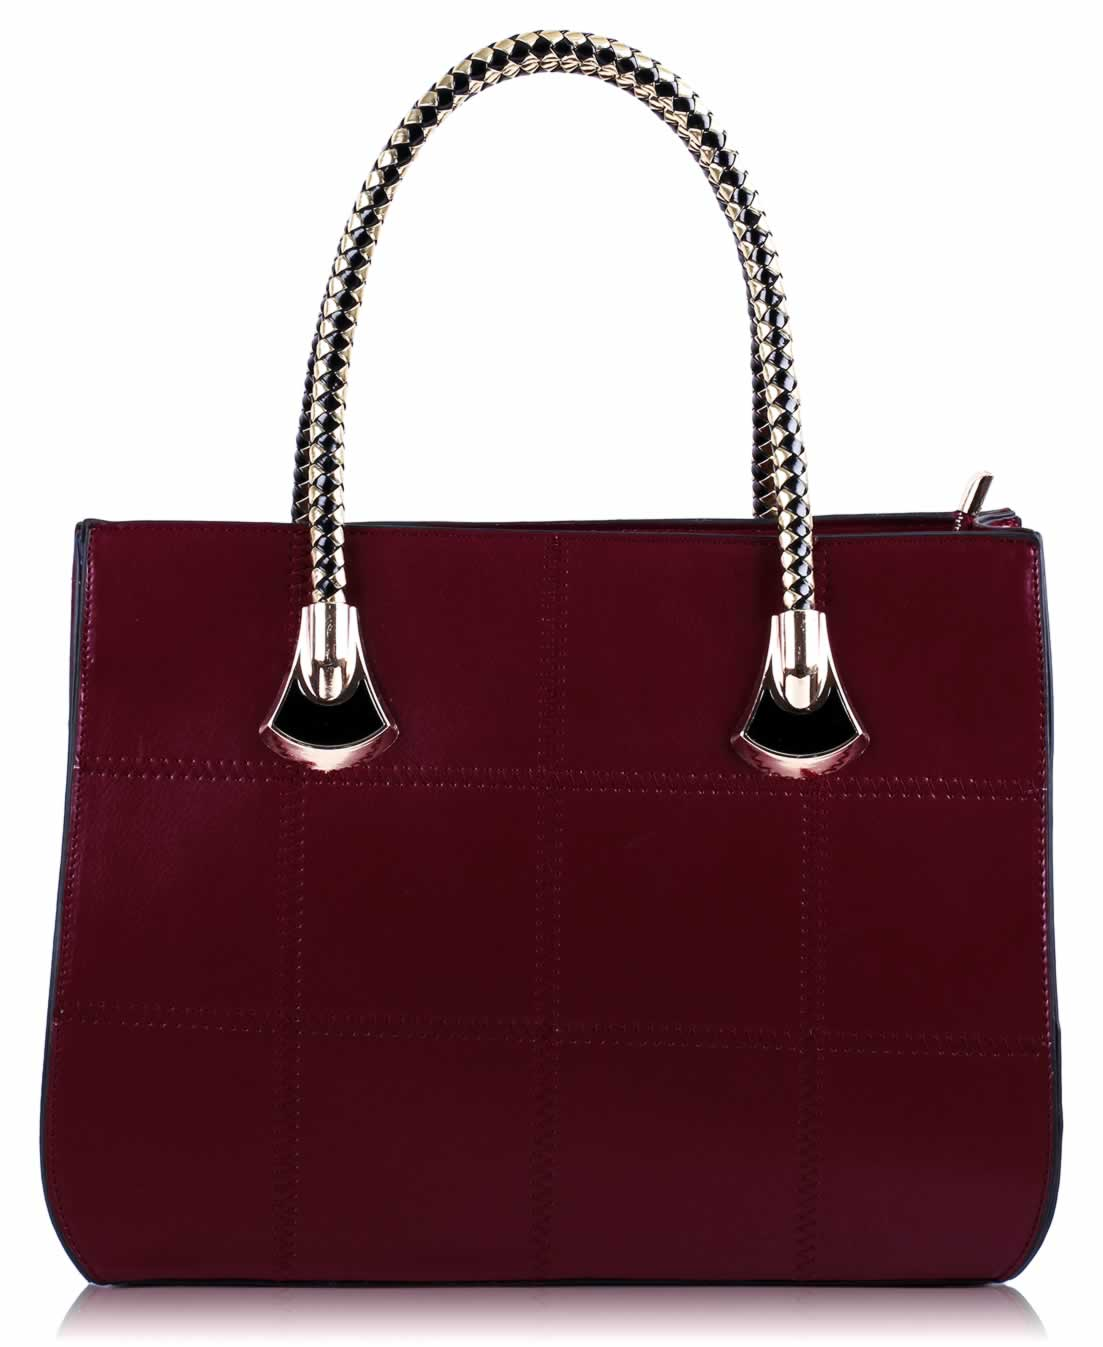 Kabelka LS00110 - Burgundy Checkered Grab Shoulder Bag